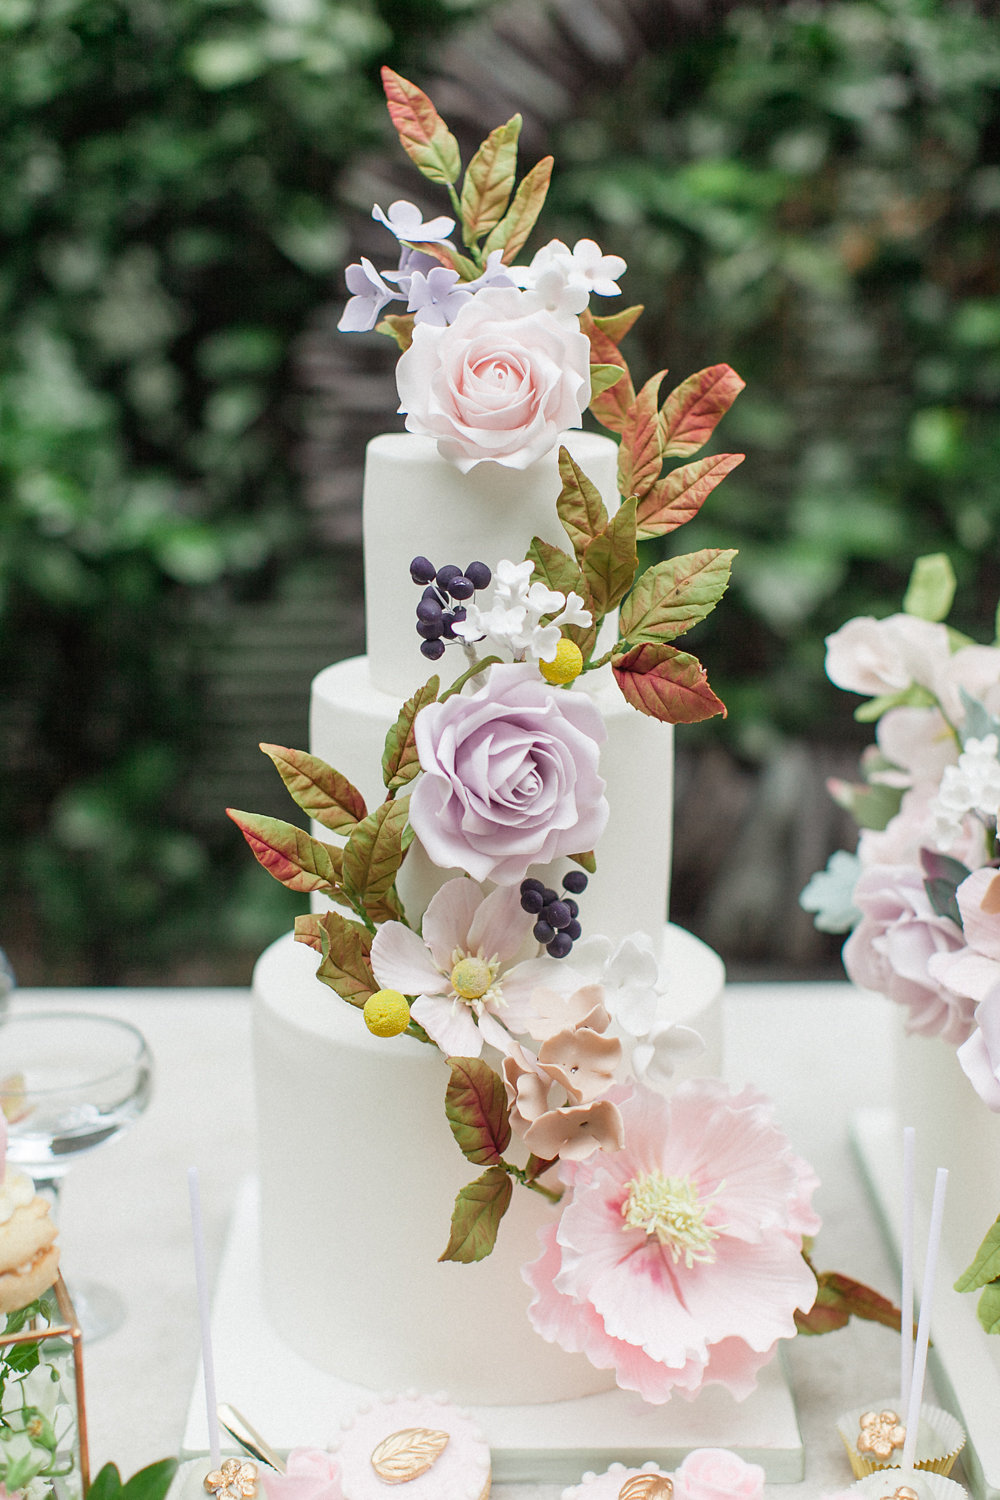 wedding cake with sugar flowers - photo by Roberta Facchini Photography http://ruffledblog.com/herbarium-inspired-wedding-ideas